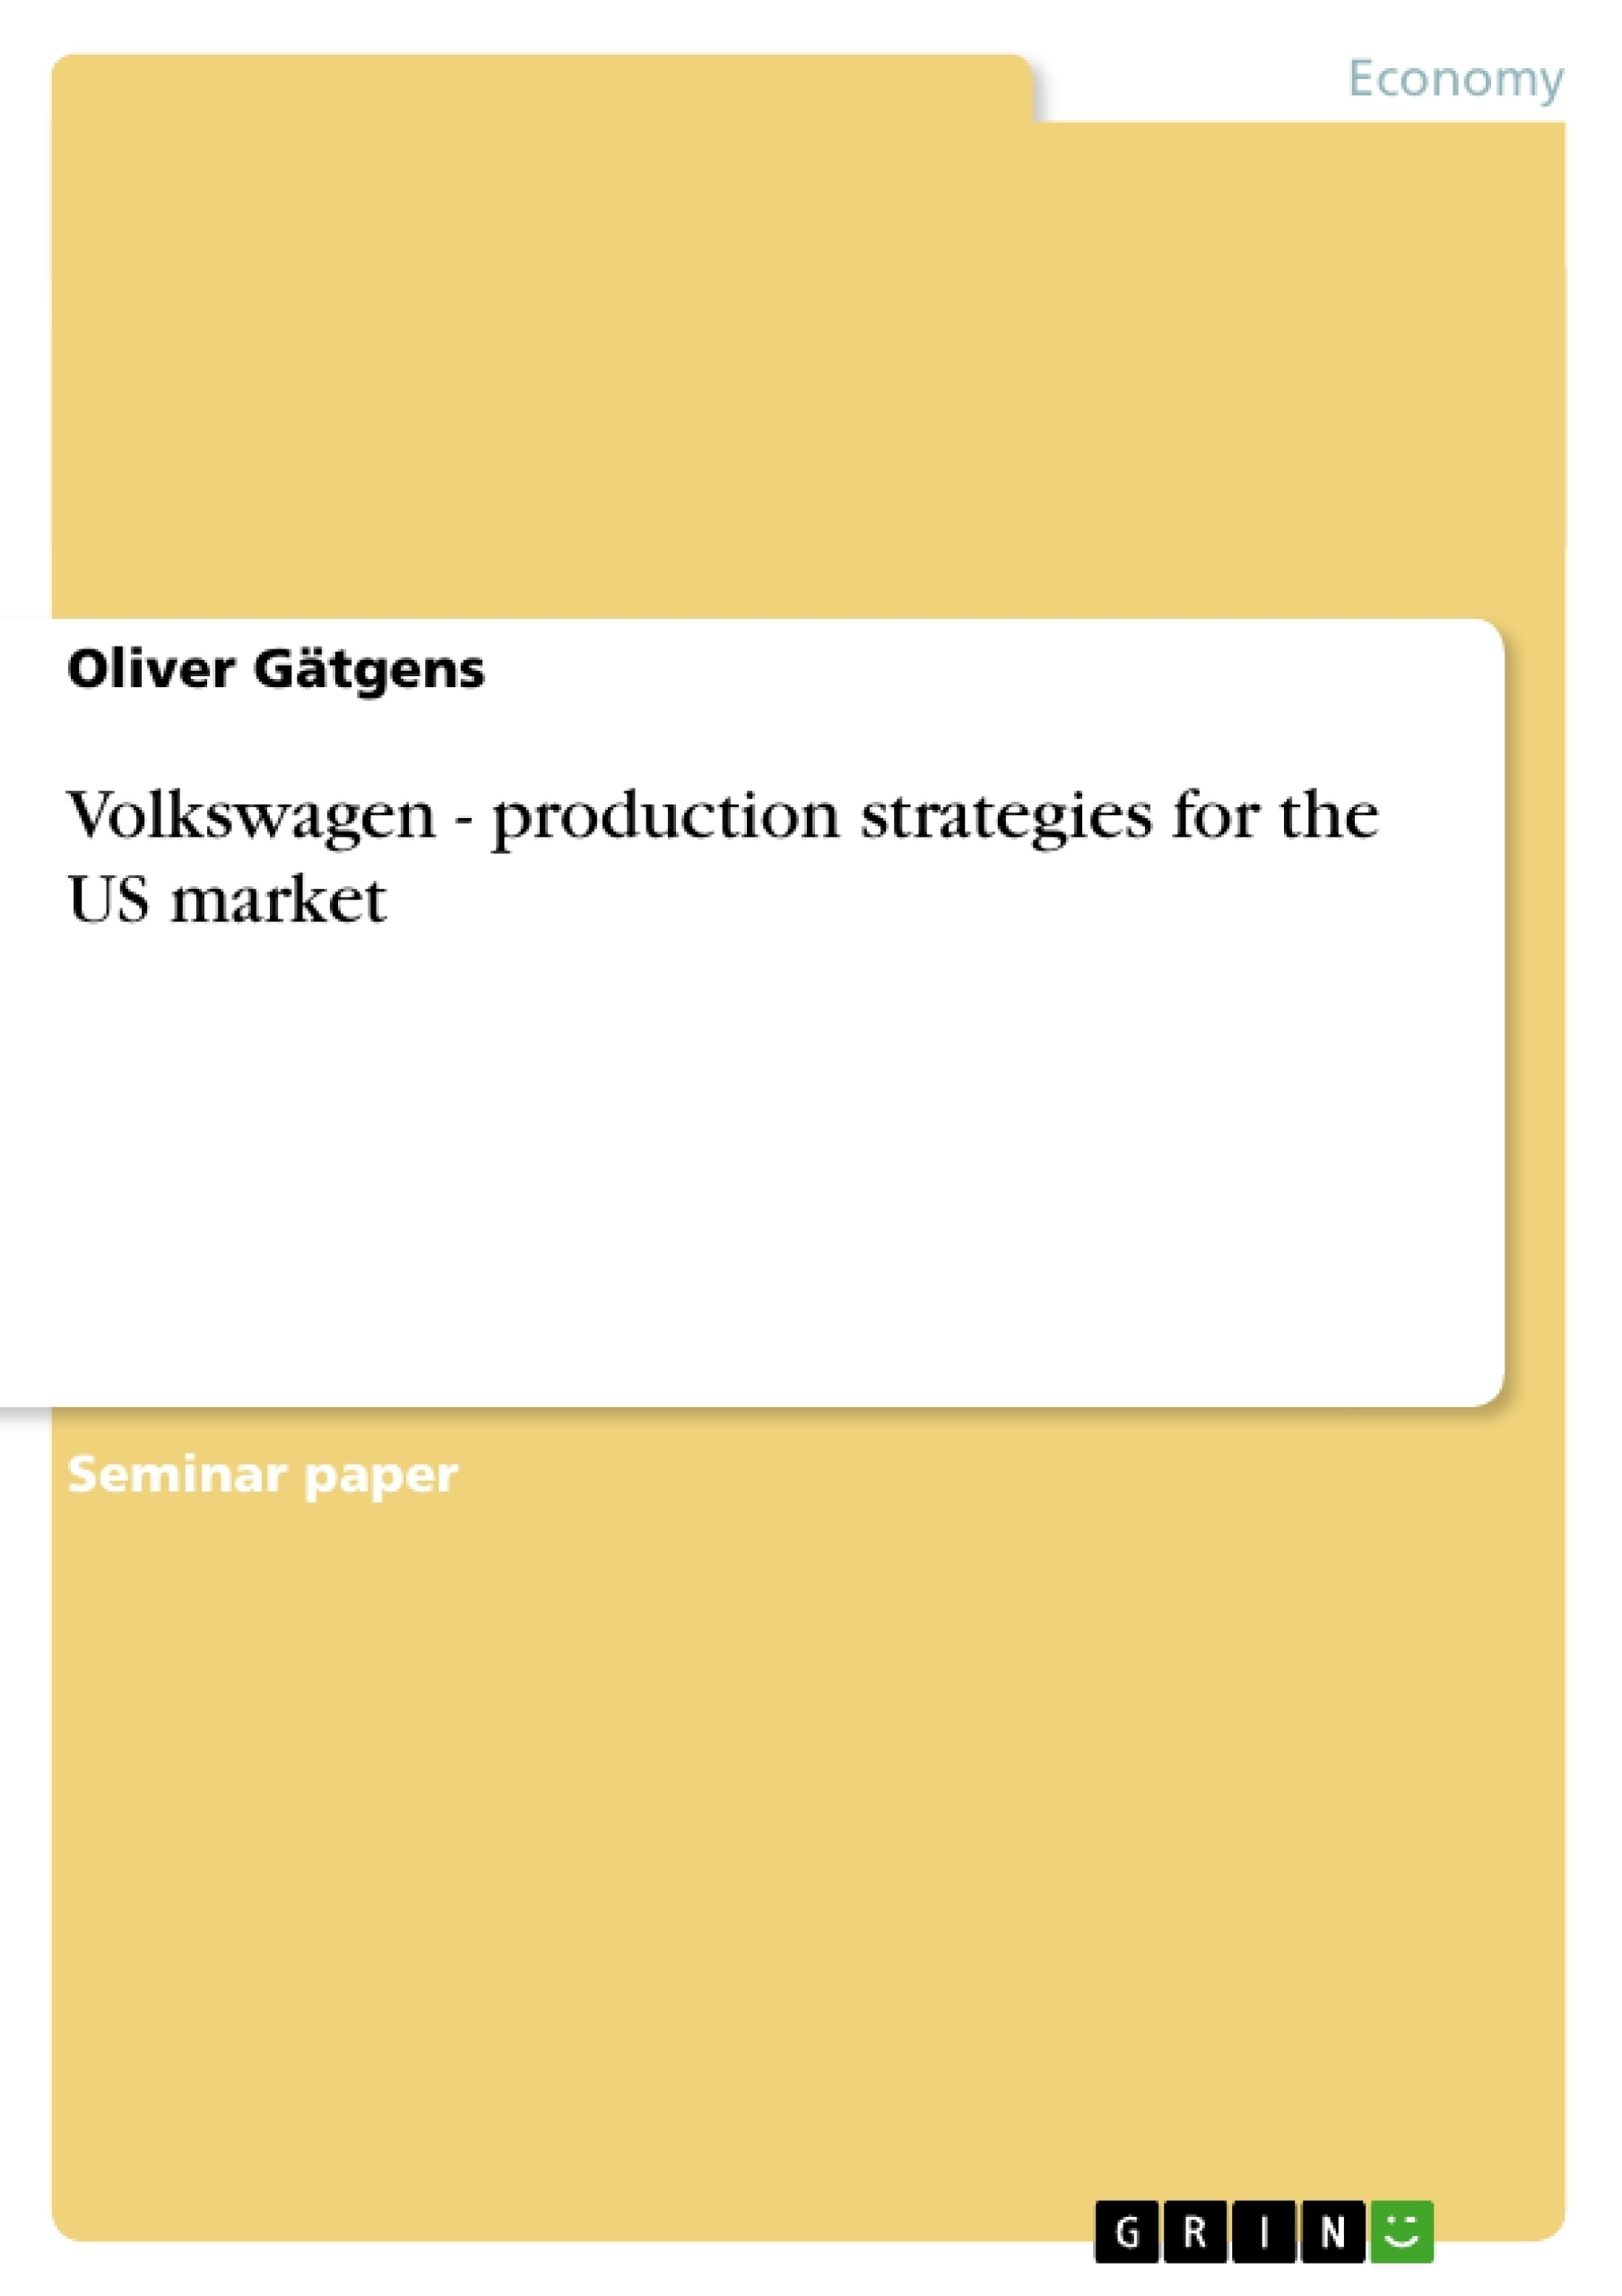 Title: Volkswagen - production strategies for the US market